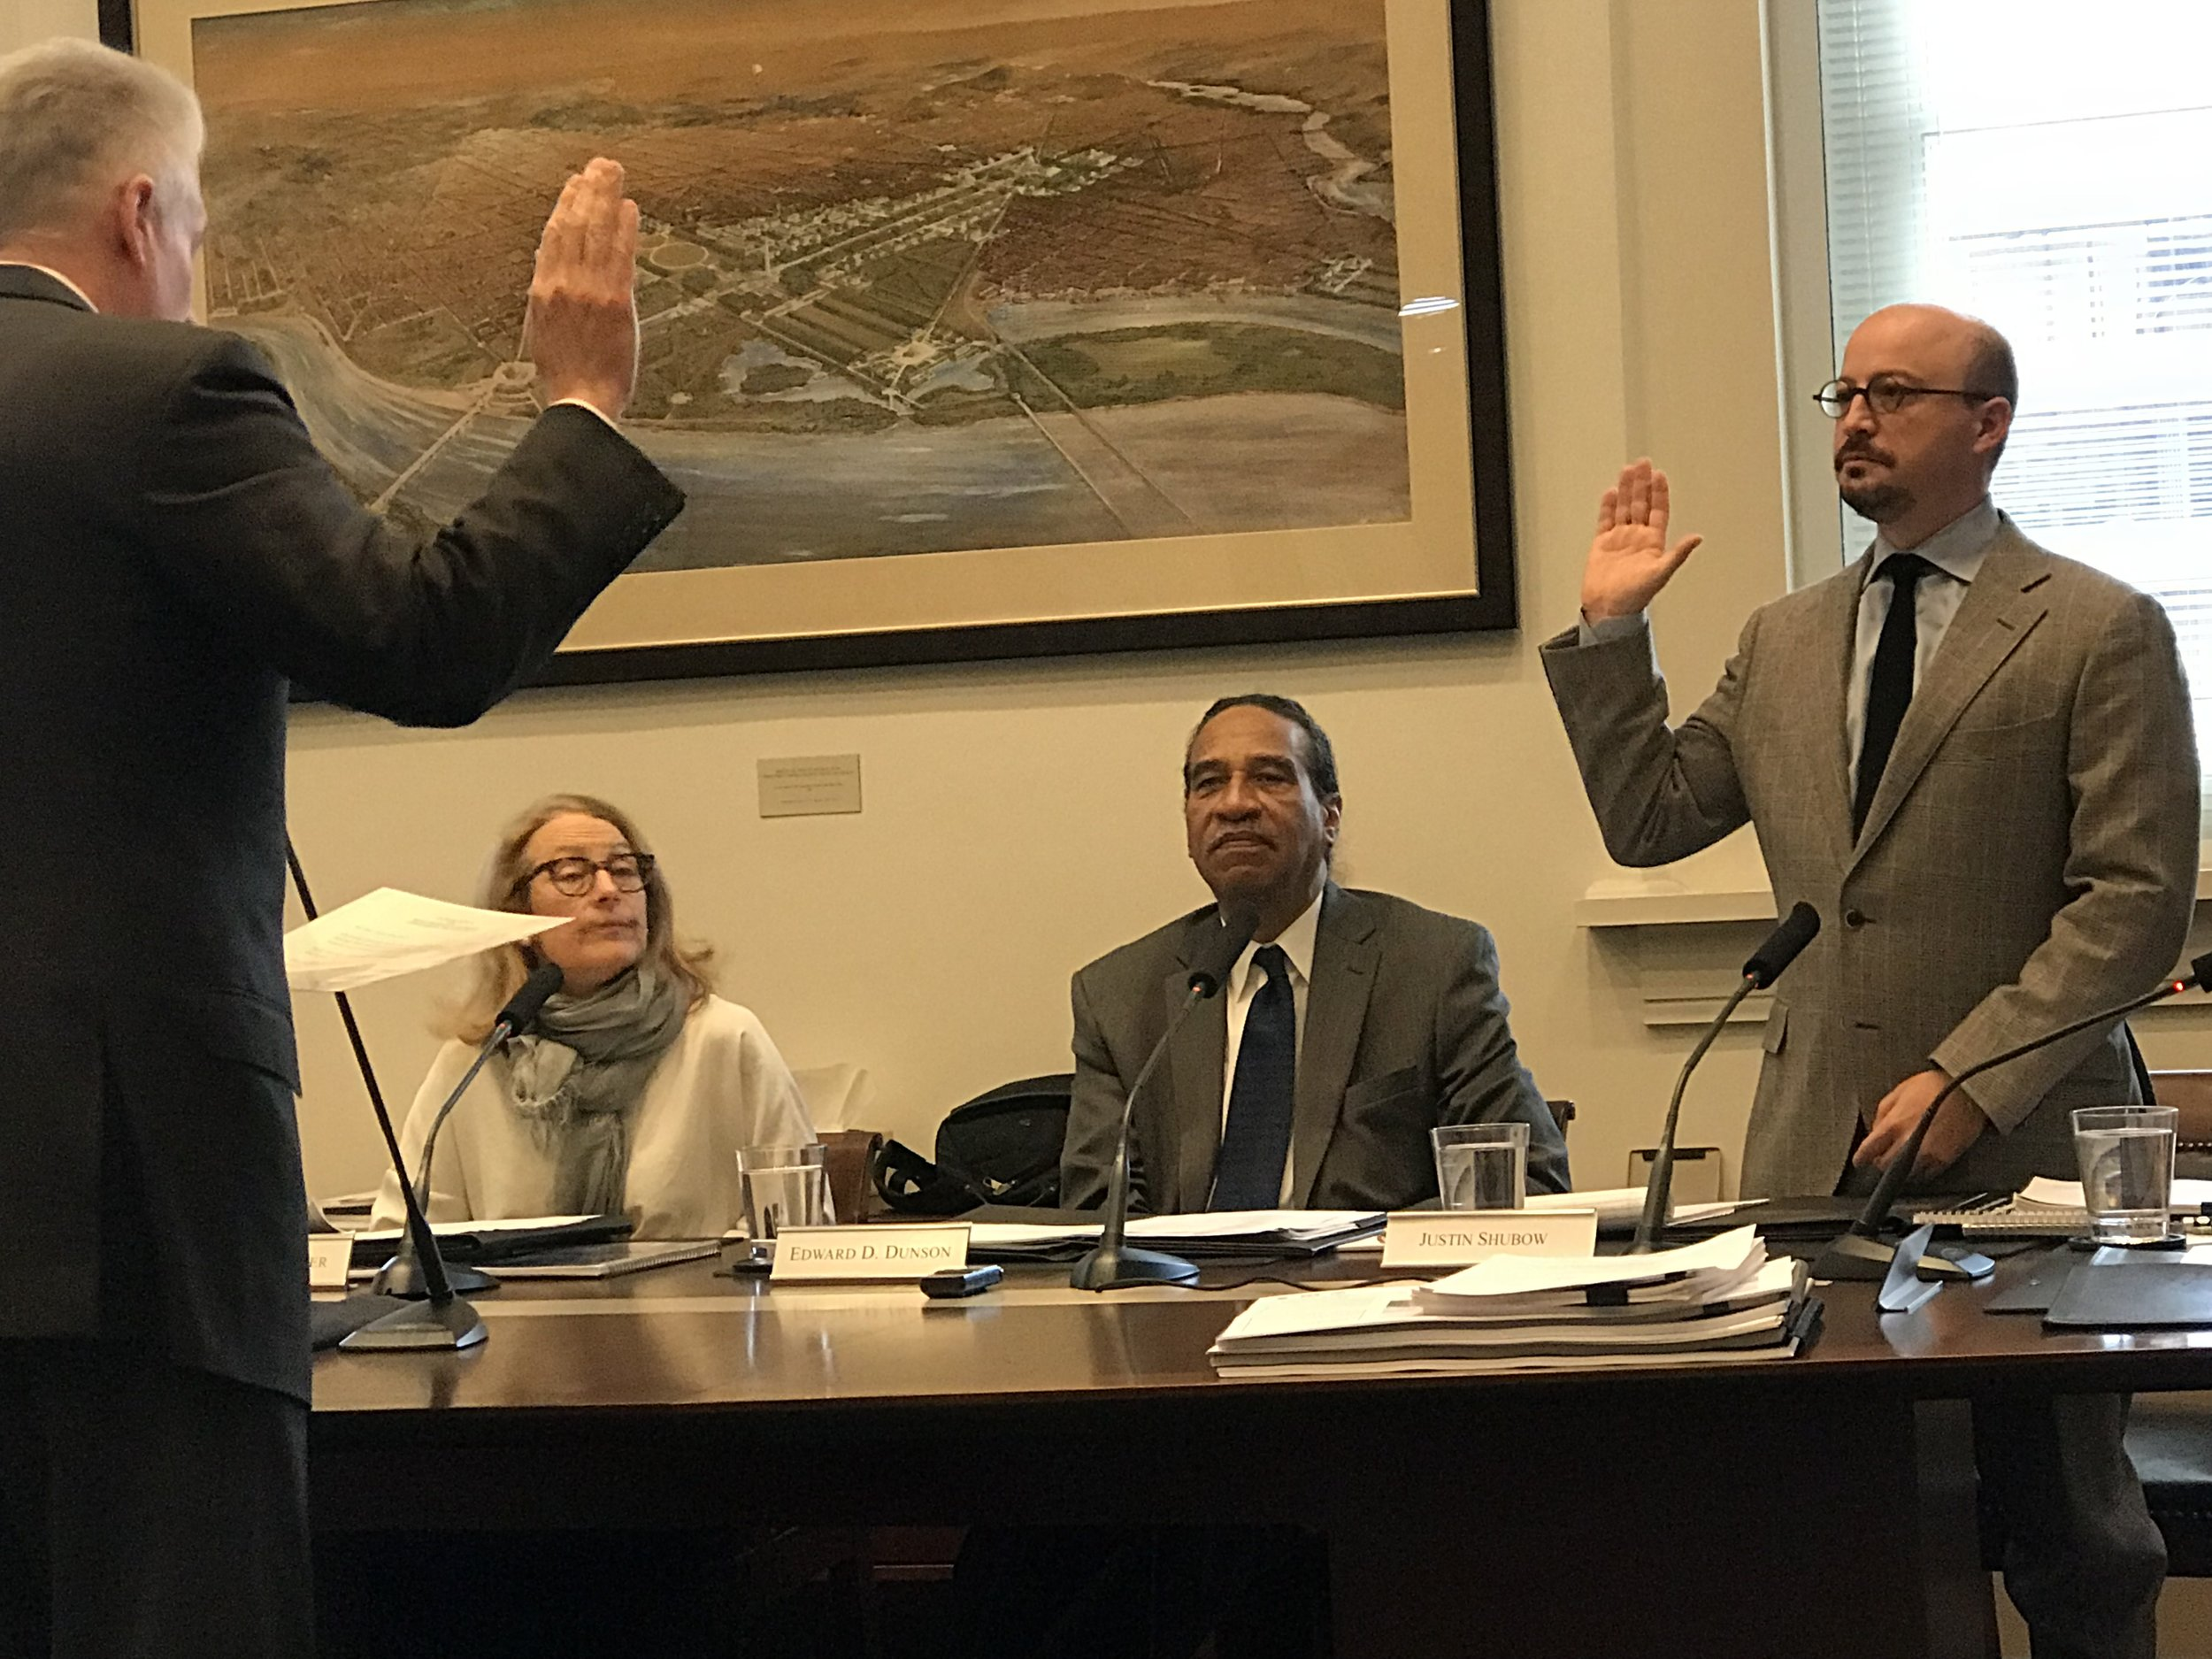 National Civic Art Society President Justin Shubow is sworn into the U.S. Commission of Fine Arts. November 15, 2018.